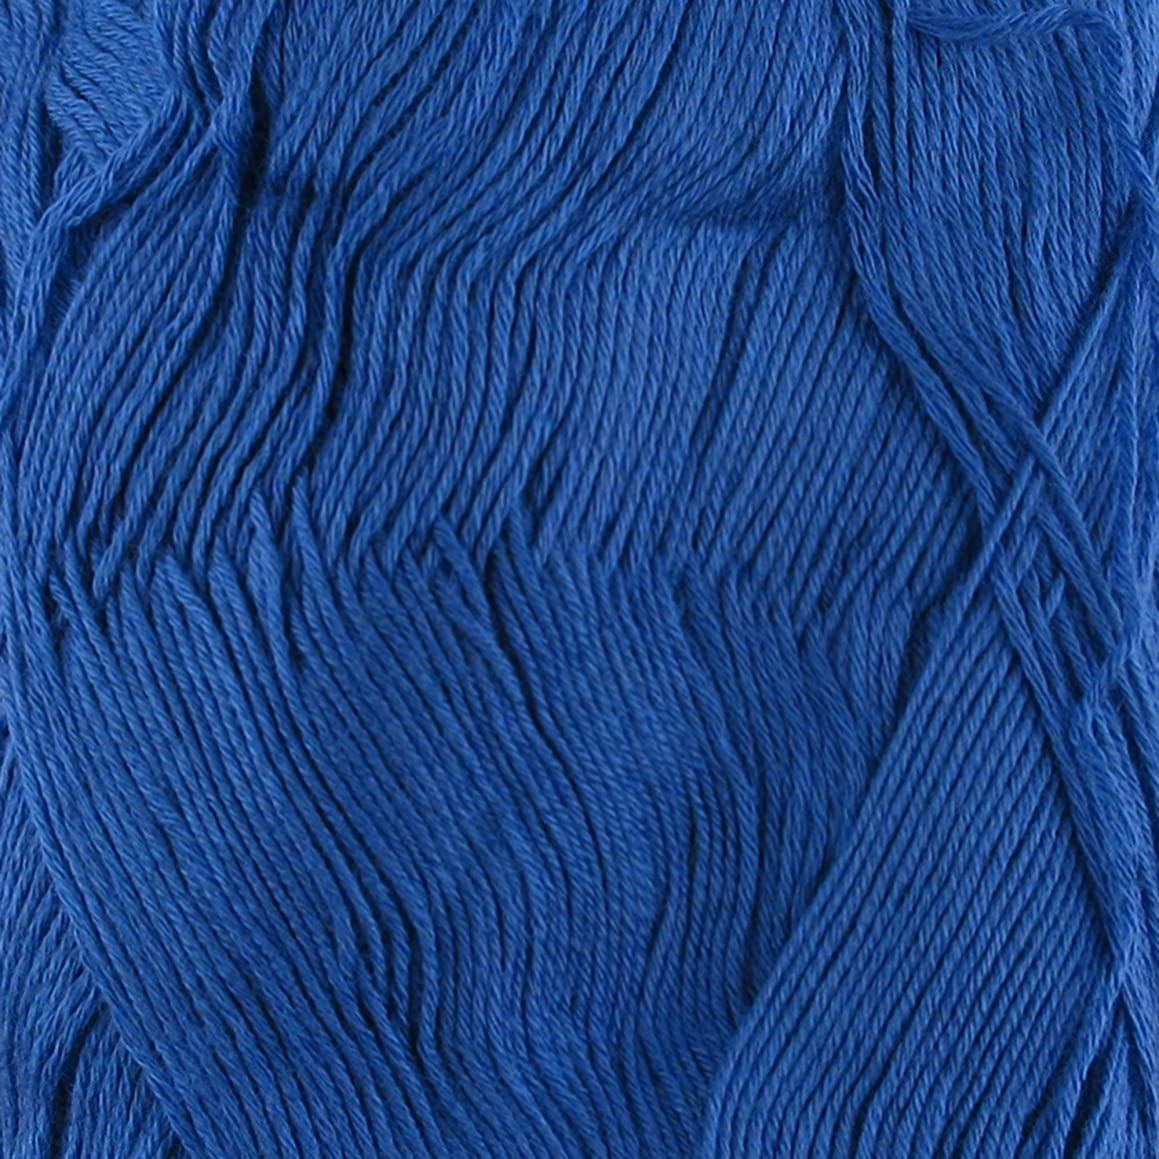 BambooMN Weight Rayon from Bamboo Fiber Yarn - Royal Blue - 2 Skeins - 50g/Skein Brand